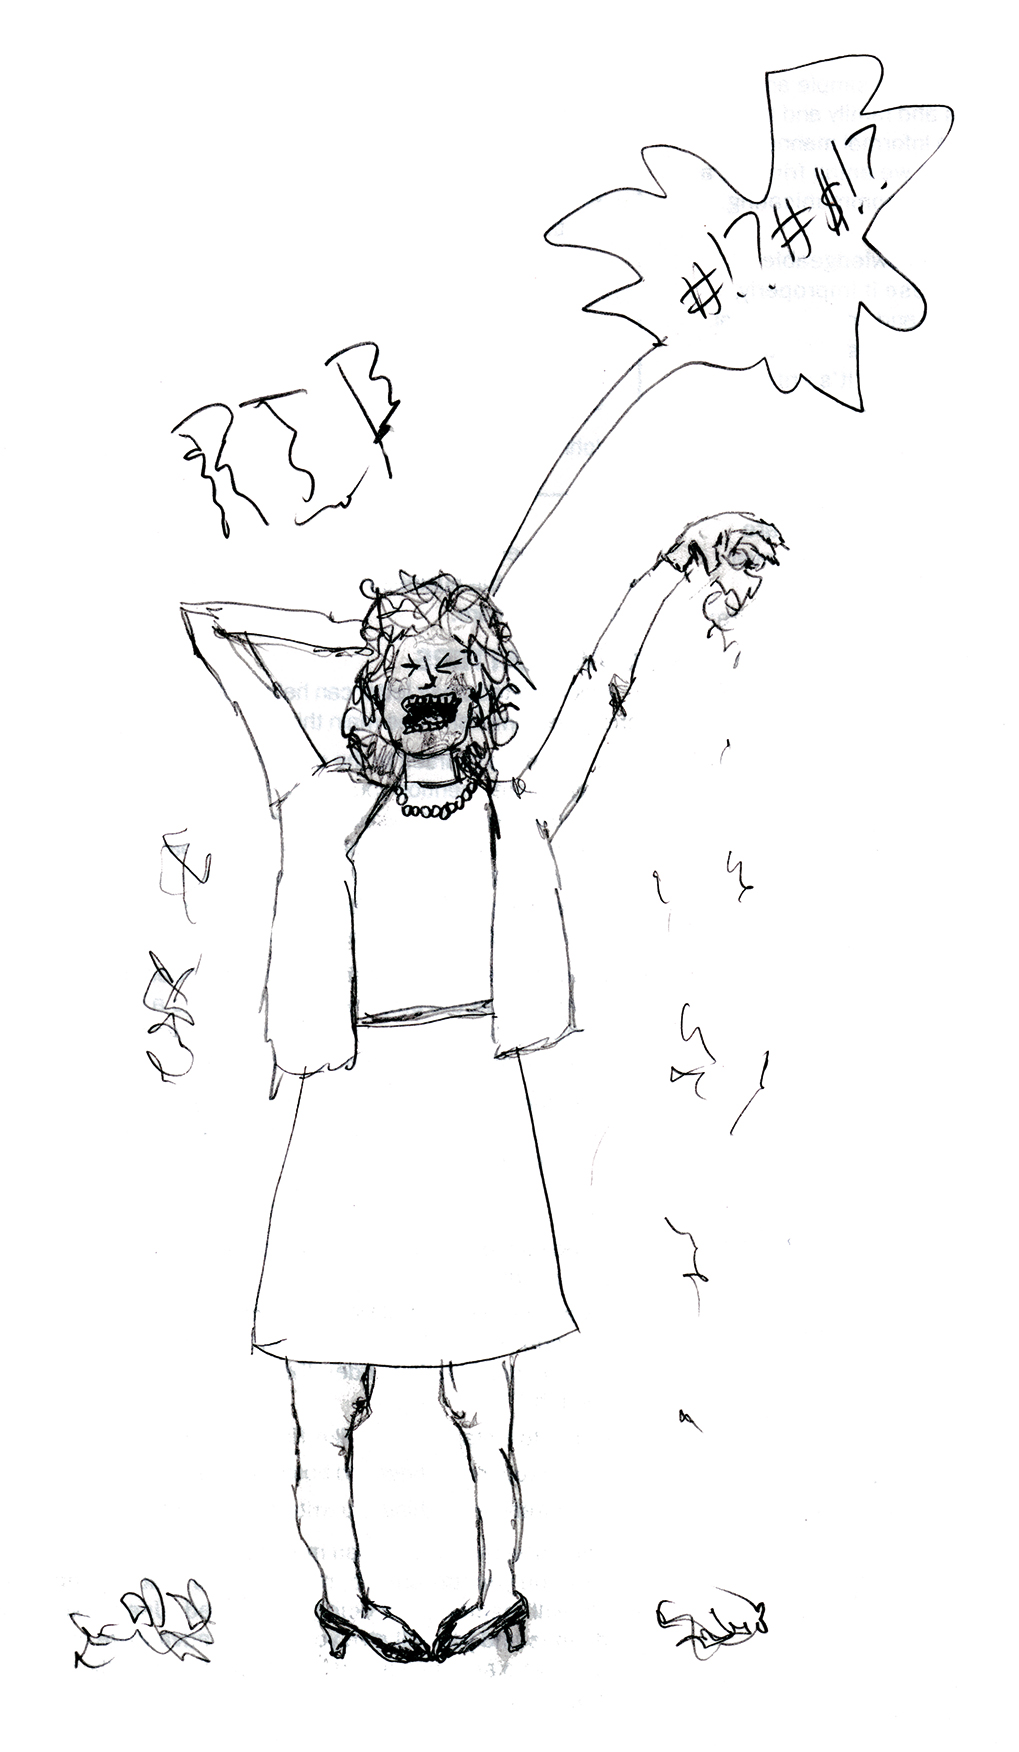 Sketch of a woman swearing and tearing her hair out.